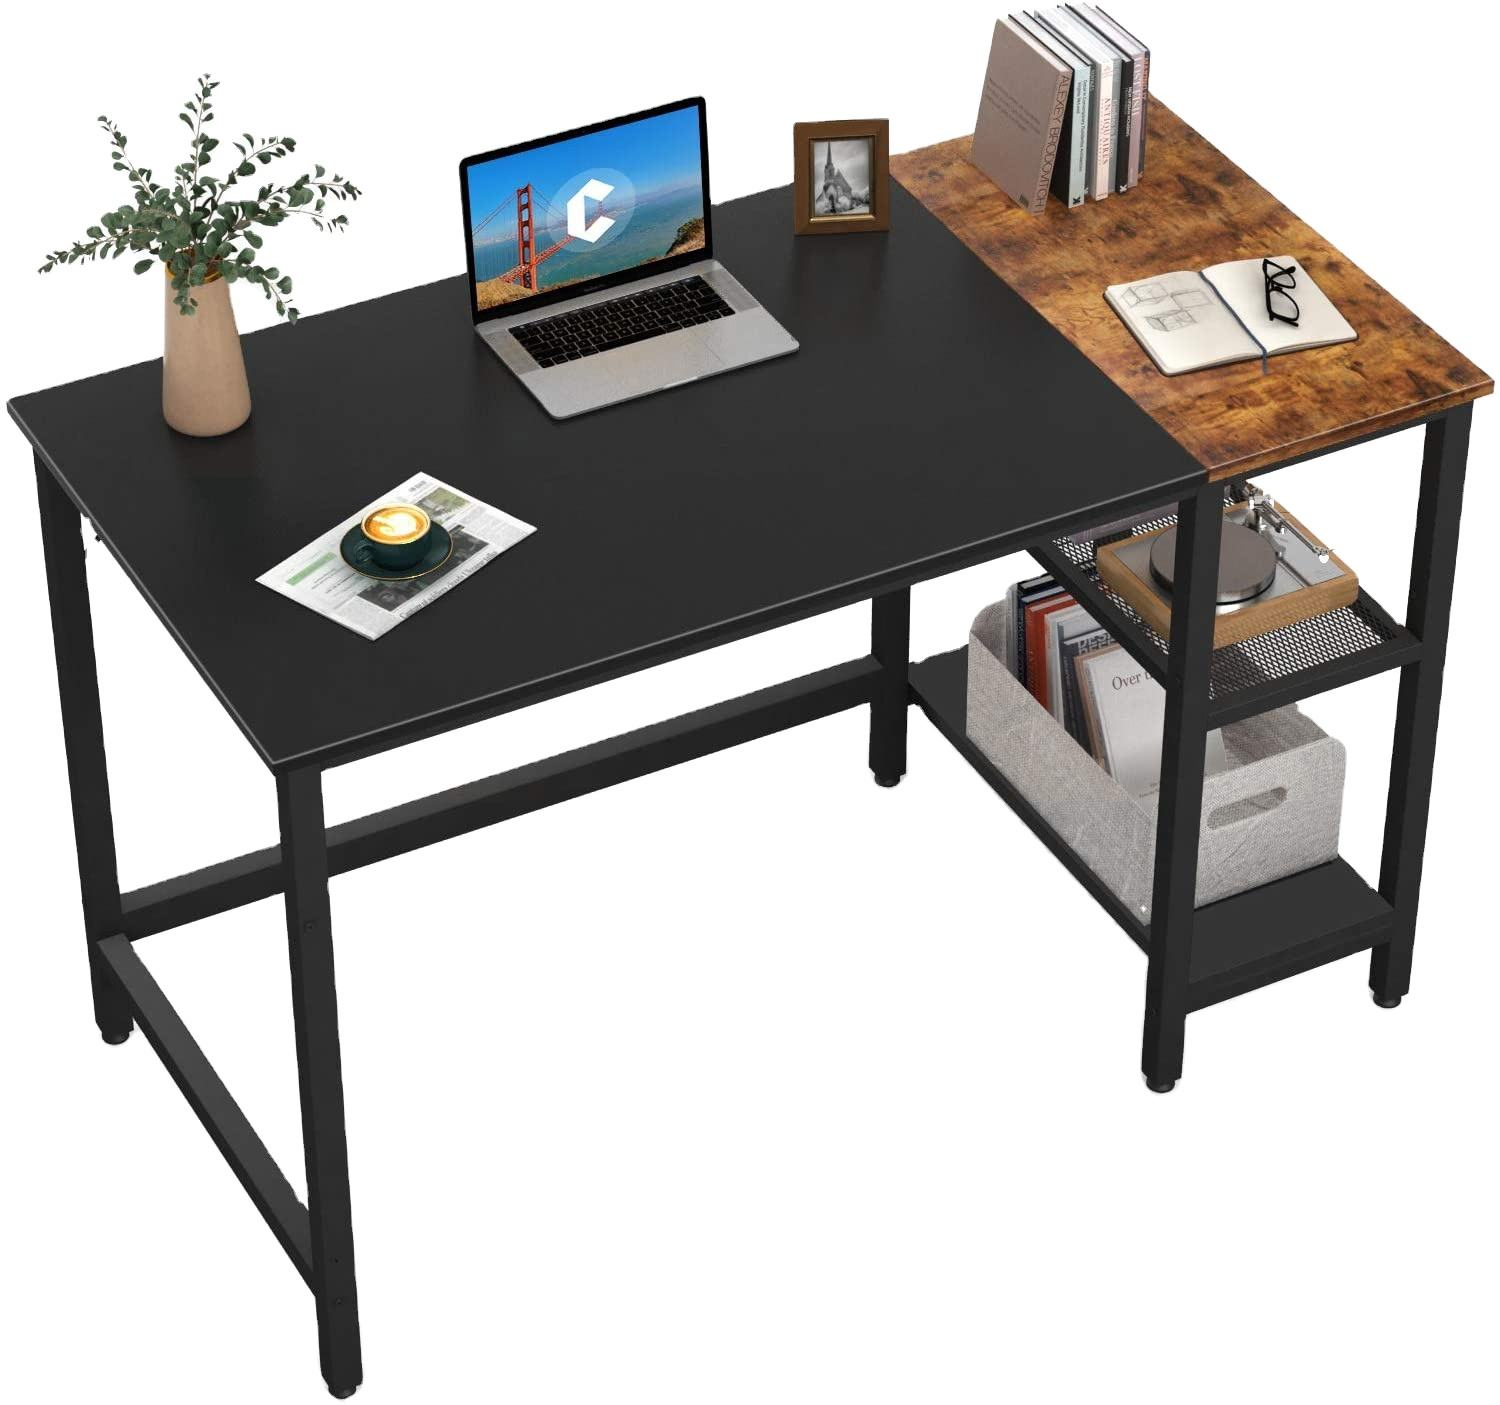 Black and Espresso Modern Simple PC Desk Study Writing Table with Storage Shelves Home Office Computer Desk